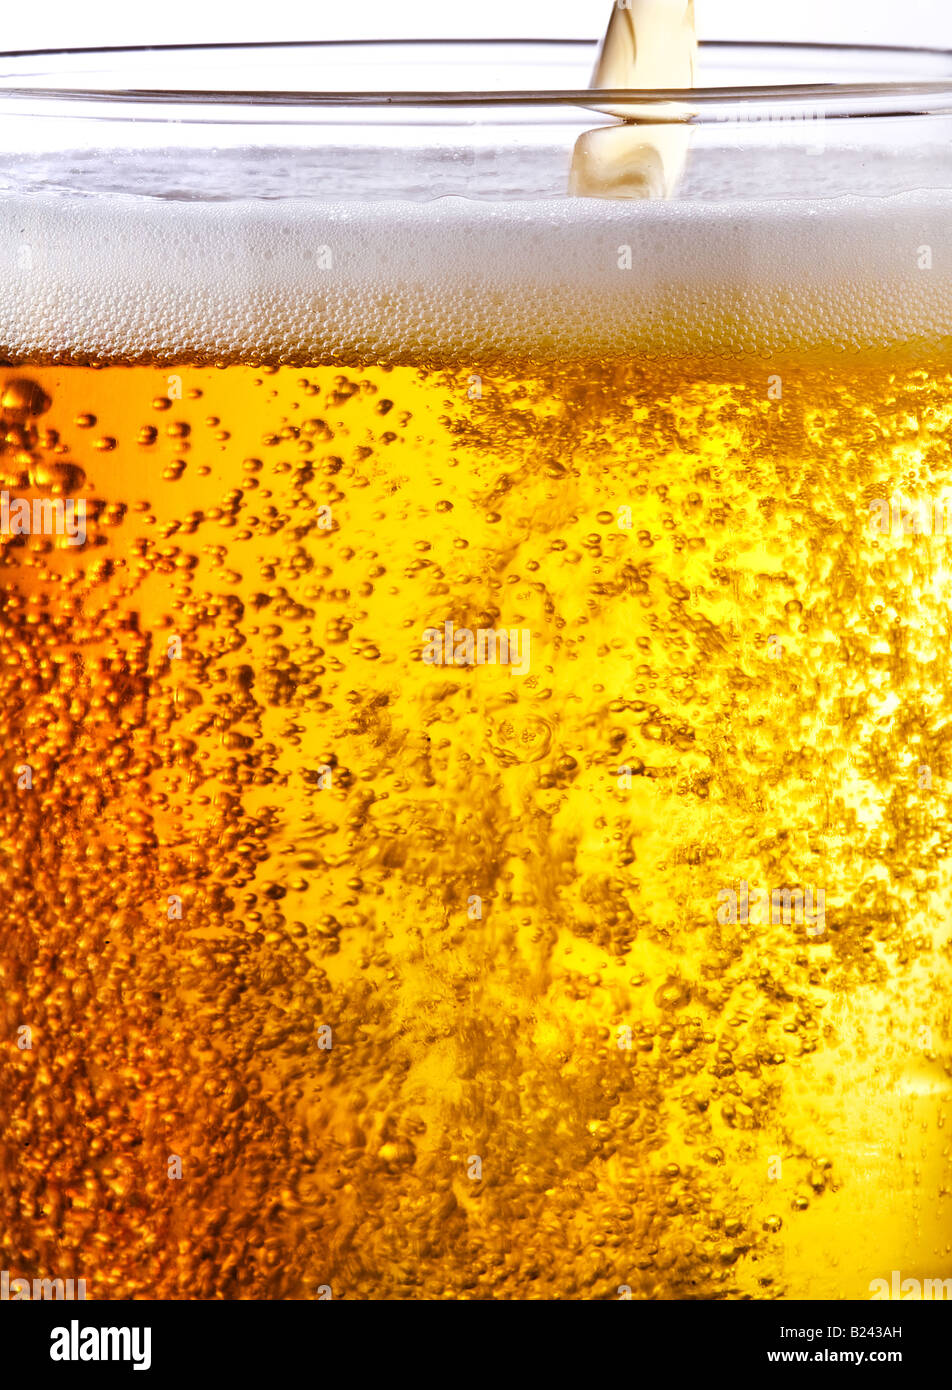 Pouring of beer - Stock Image